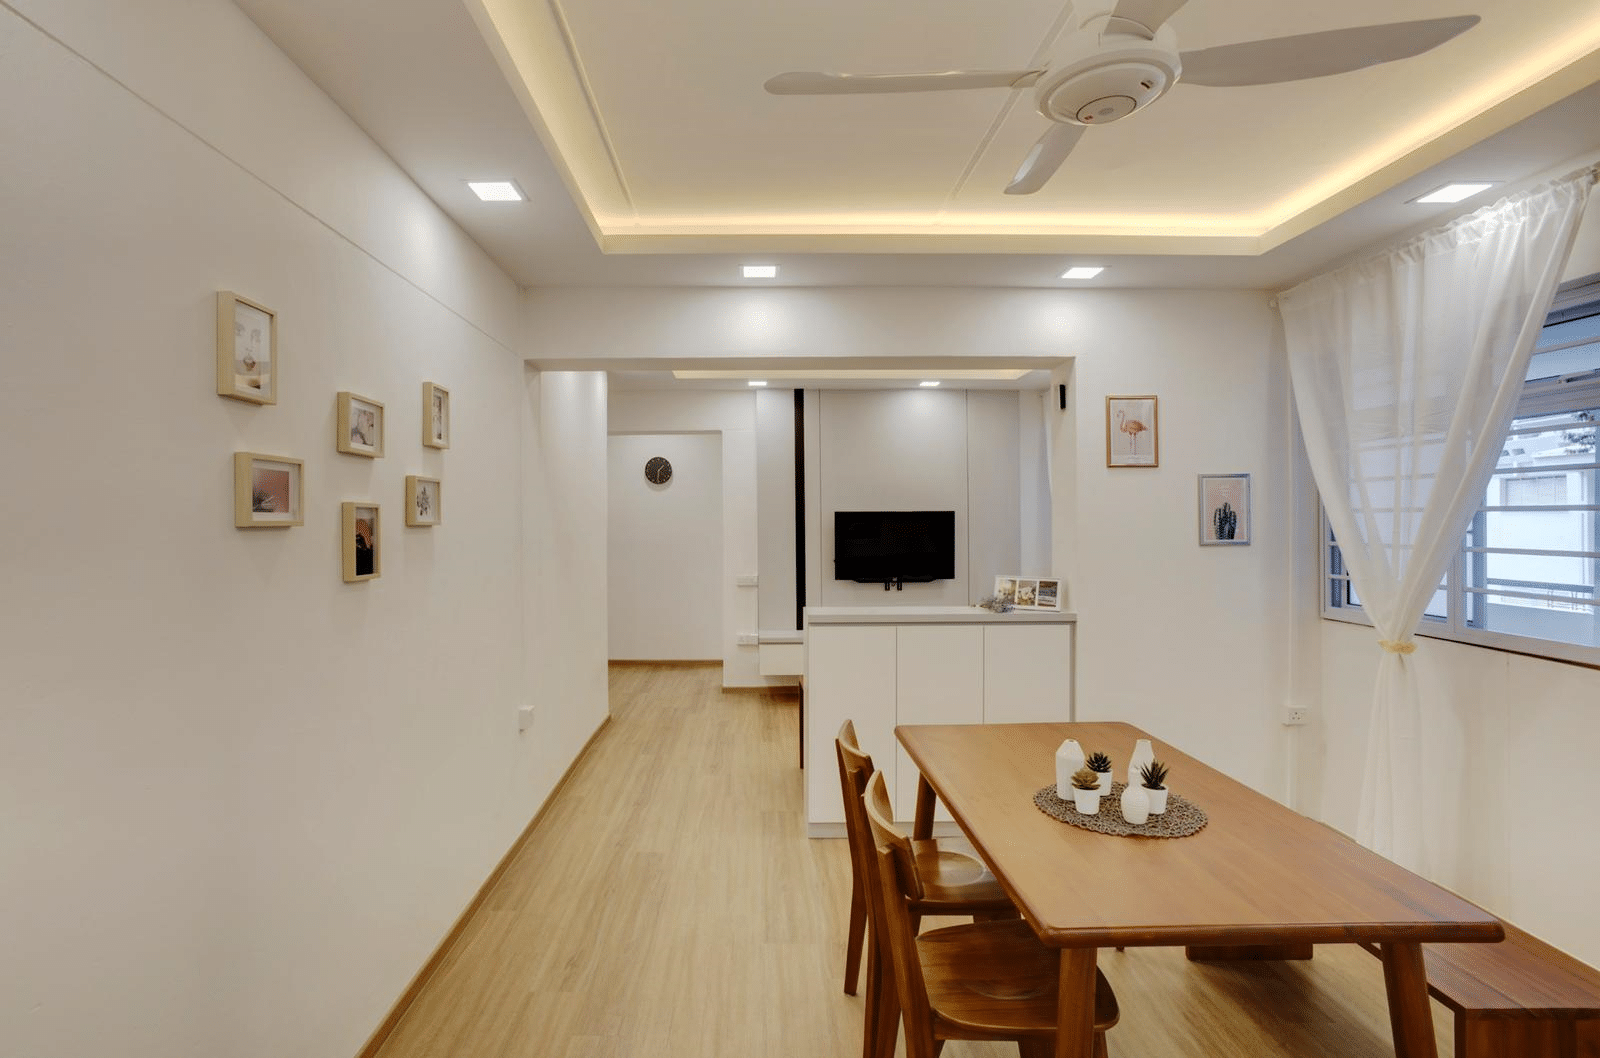 elegantkitchen design